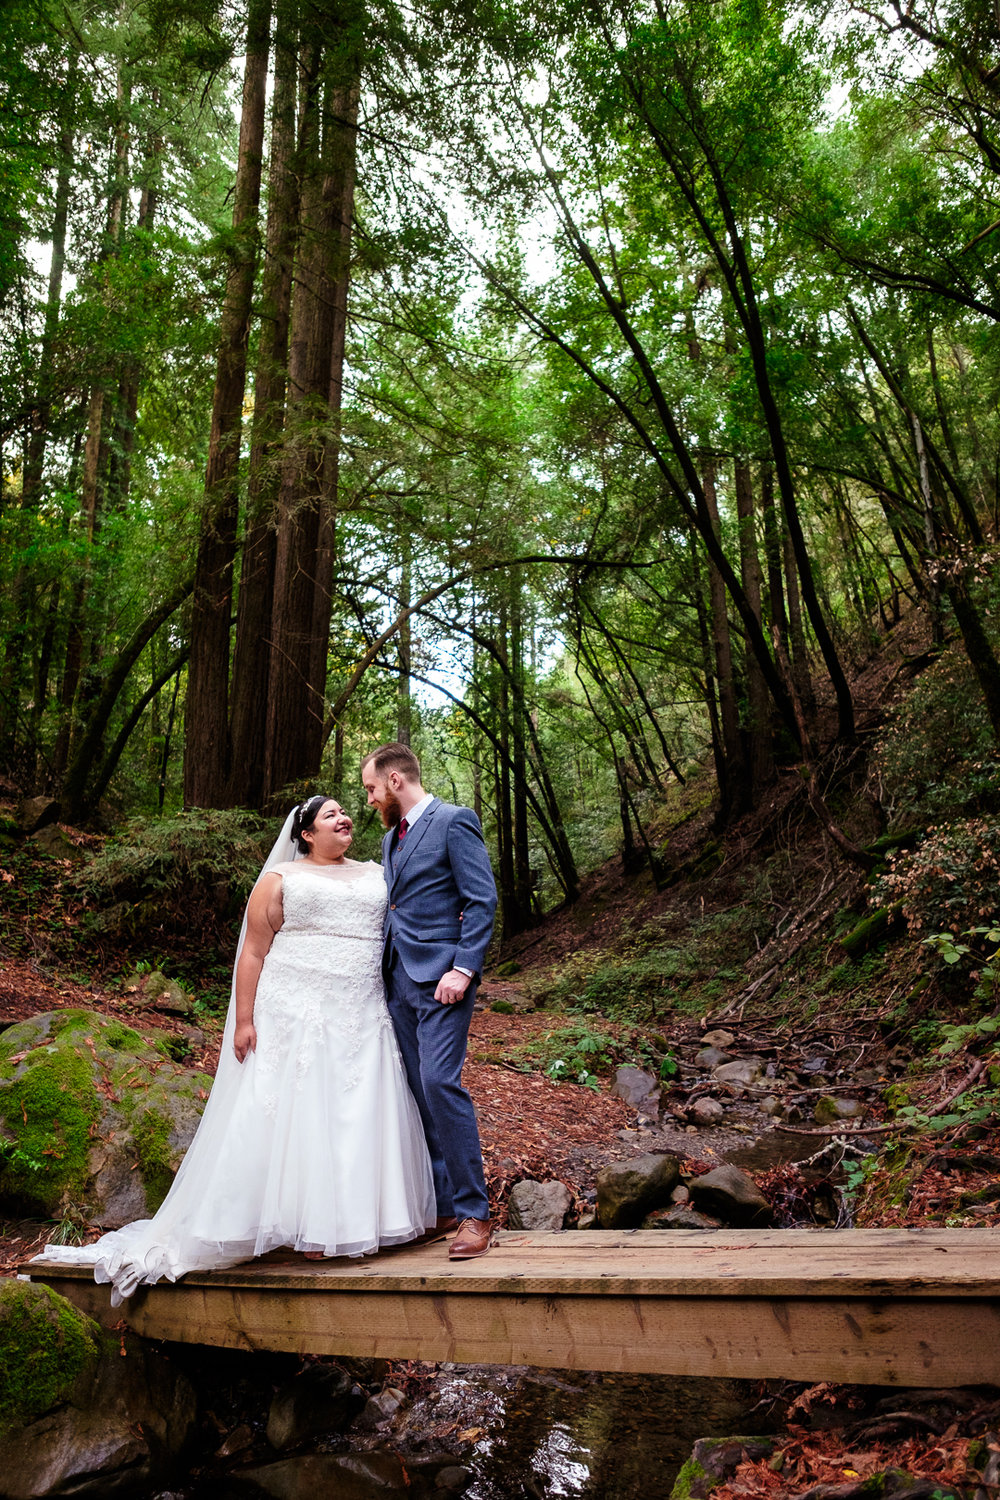 Bride and Groom took some breathtaking pictures in Saratoga Springs.